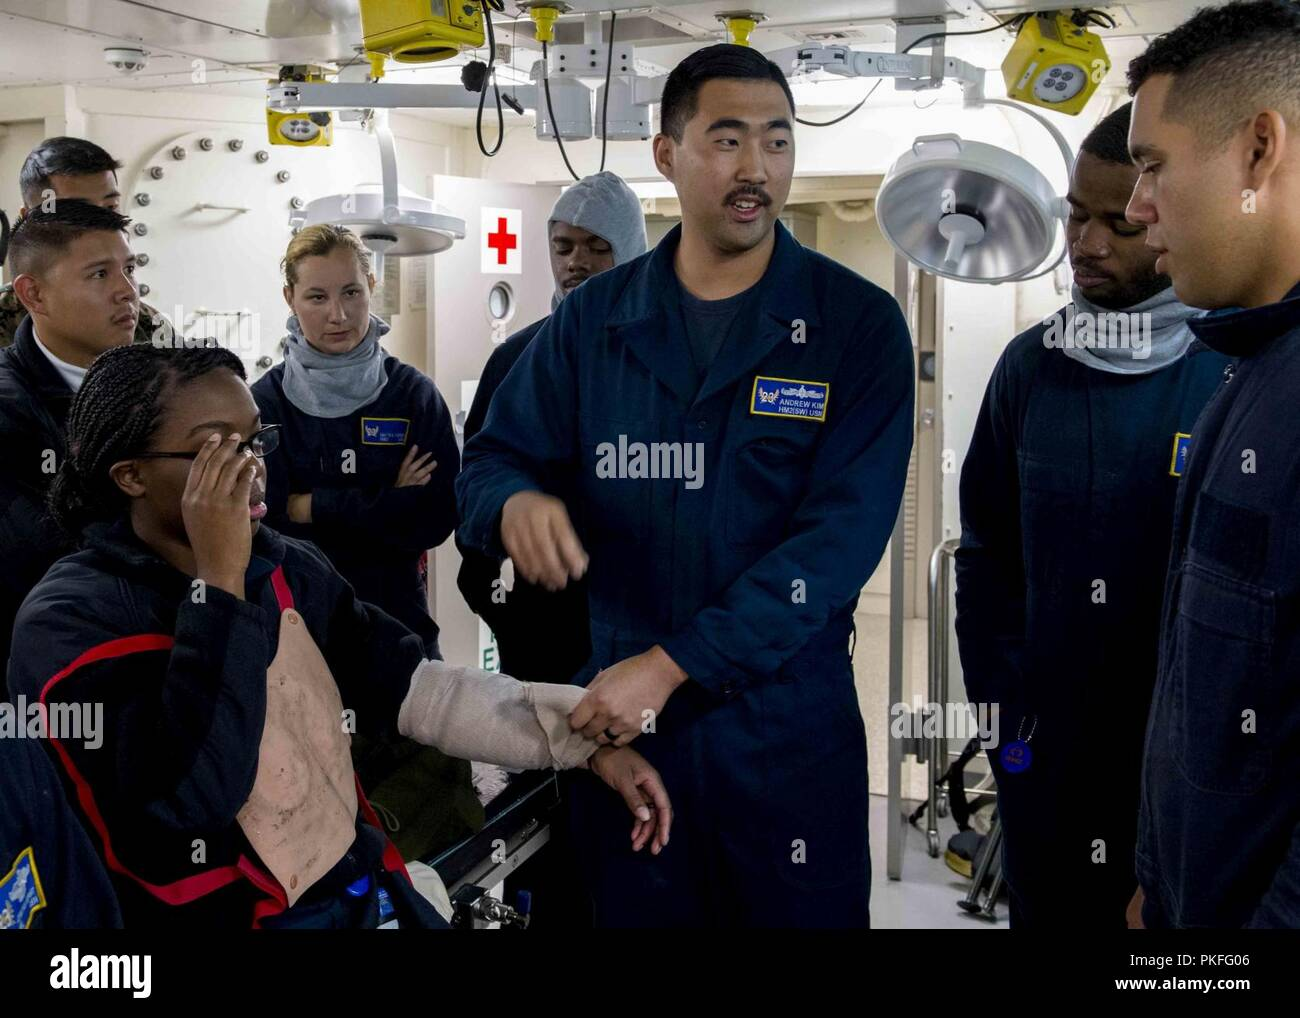 PACIFIC OCEAN (July 28, 2018) Hospital Corpsman 2nd Class Andrew Kim, from Fullerton, Calif., conducts emergency medical training in the medical ward of San Antonio-class amphibious transport dock USS Anchorage (LPD 23) during a regularly scheduled deployment of Essex Amphibious Ready Group (ARG) and 13th Marine Expeditionary Unit (MEU). The Essex ARG/MEU team is a strong and flexible force equipped and scalable to respond to any crisis ranging from humanitarian assistance and disaster relief to contingency operations. - Stock Image